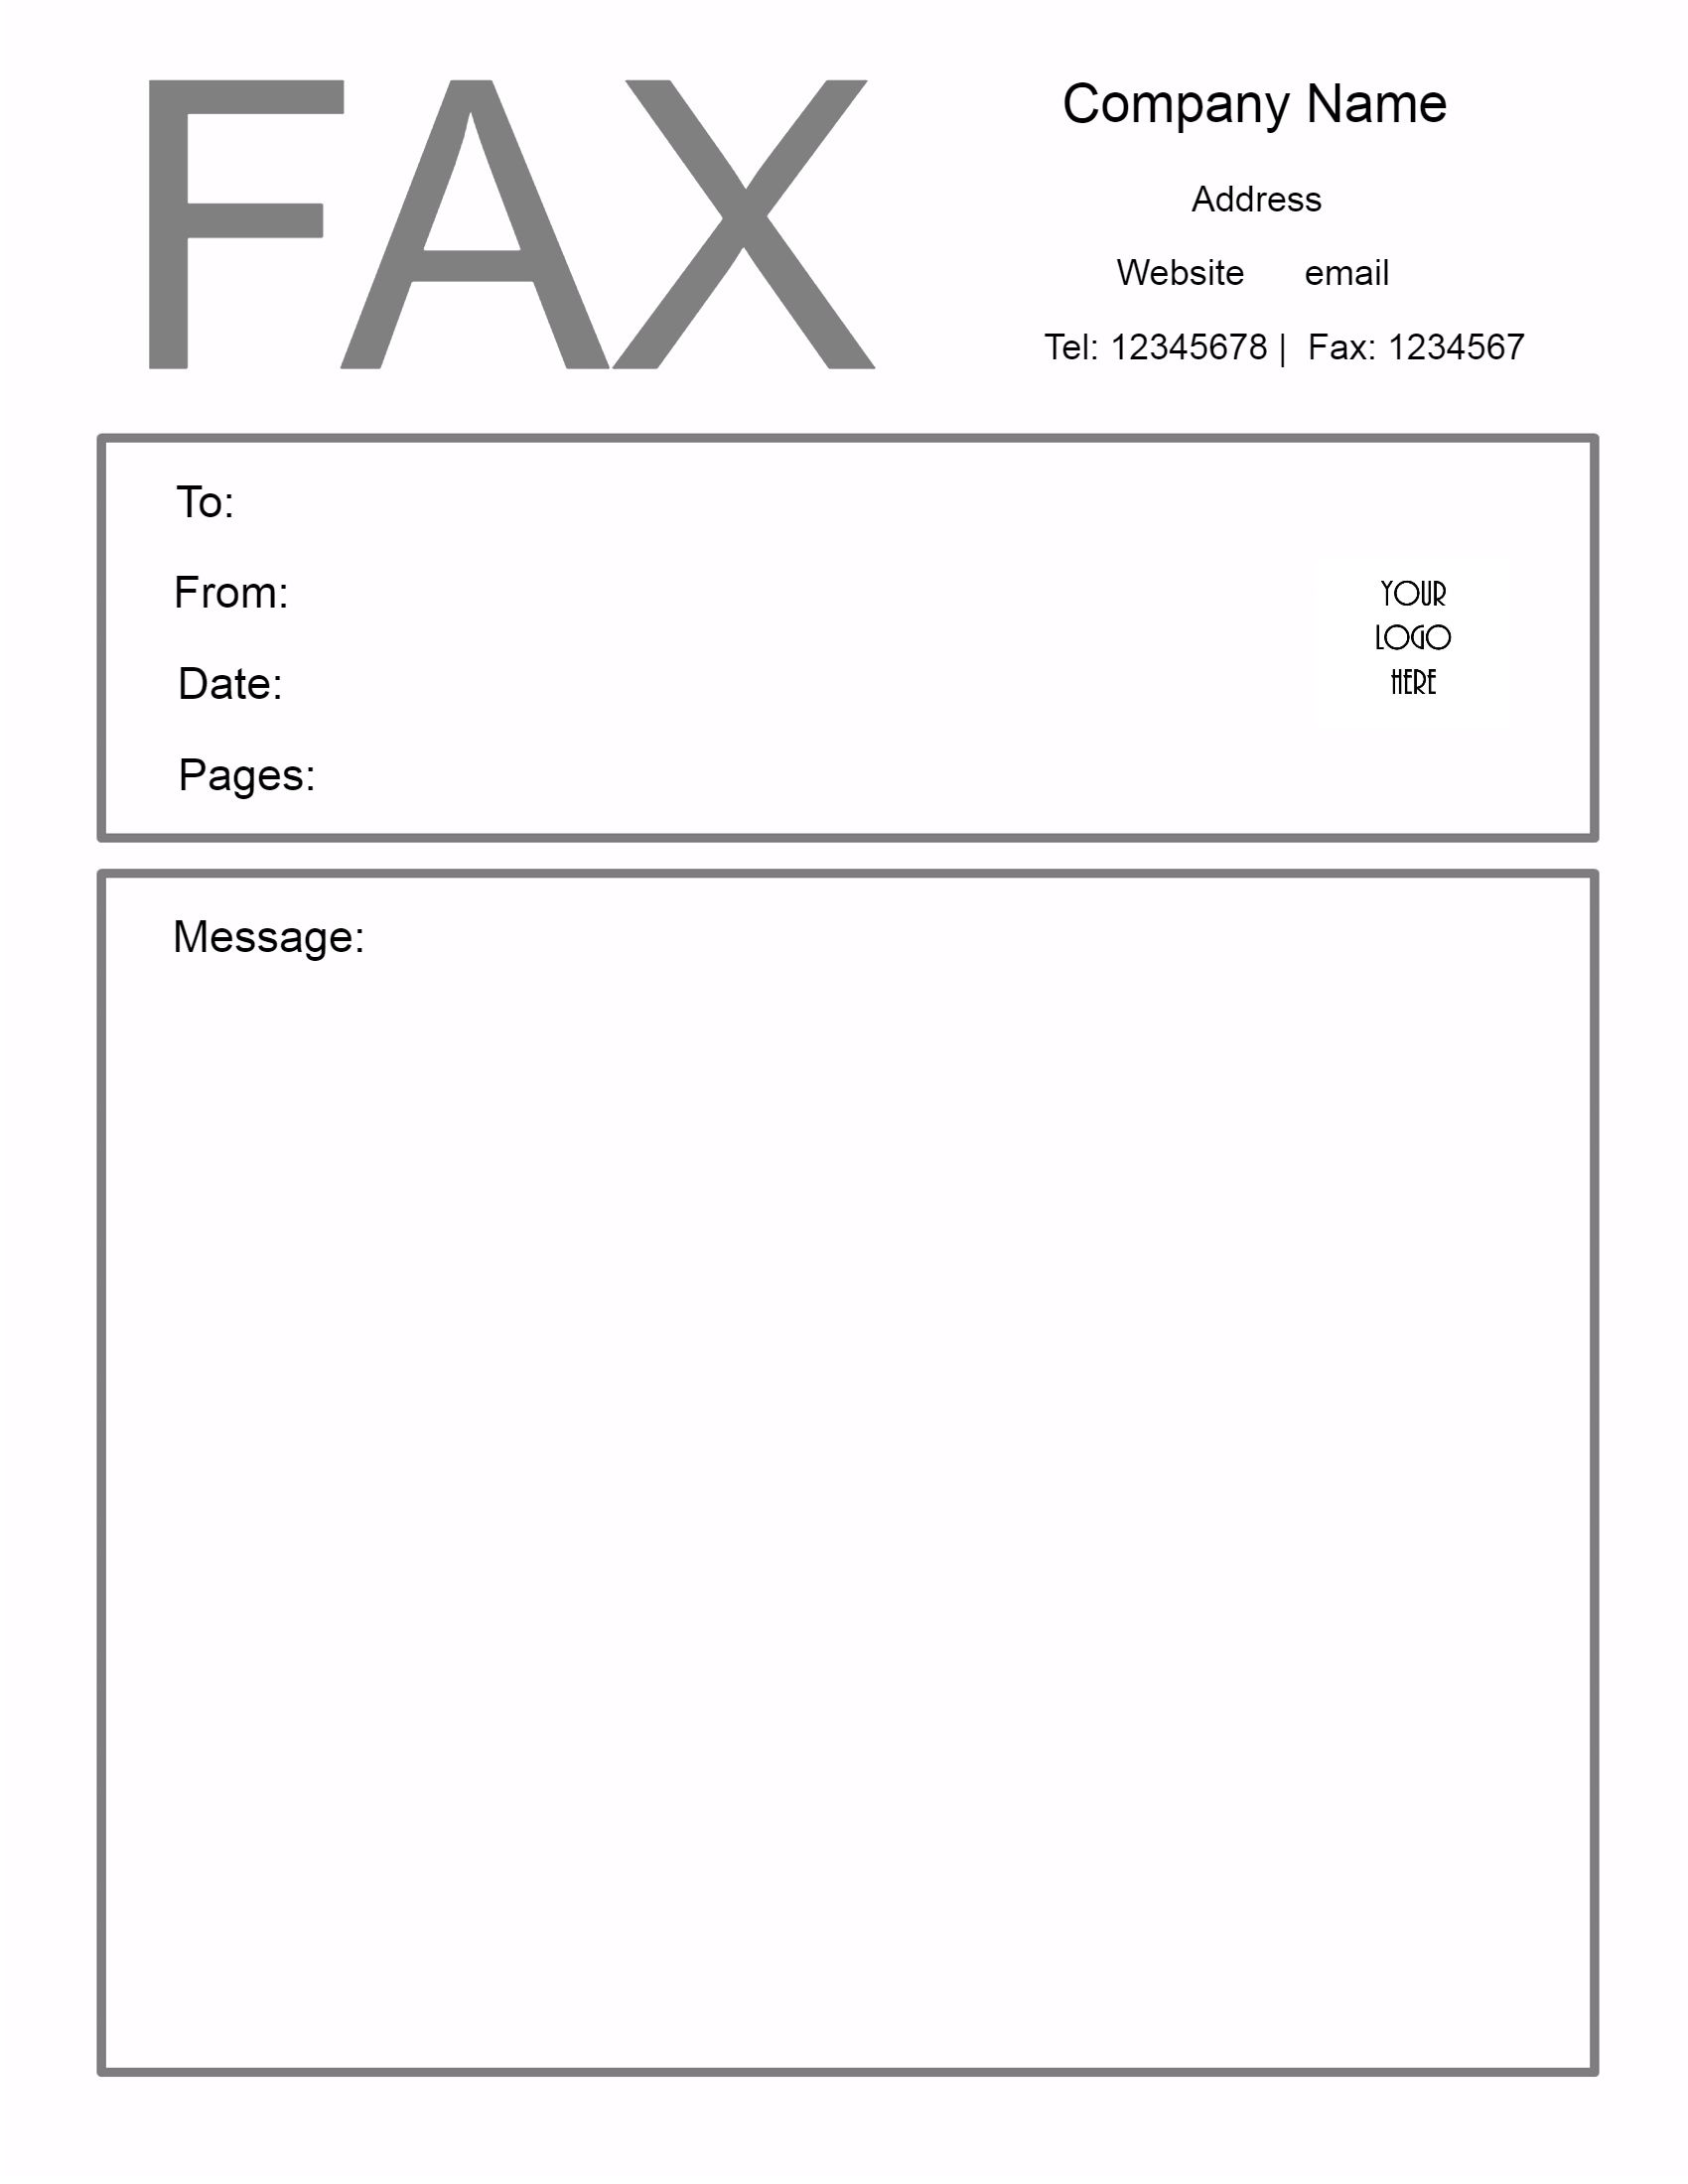 Fax Cover Sheet Template  Example Fax Cover Sheet